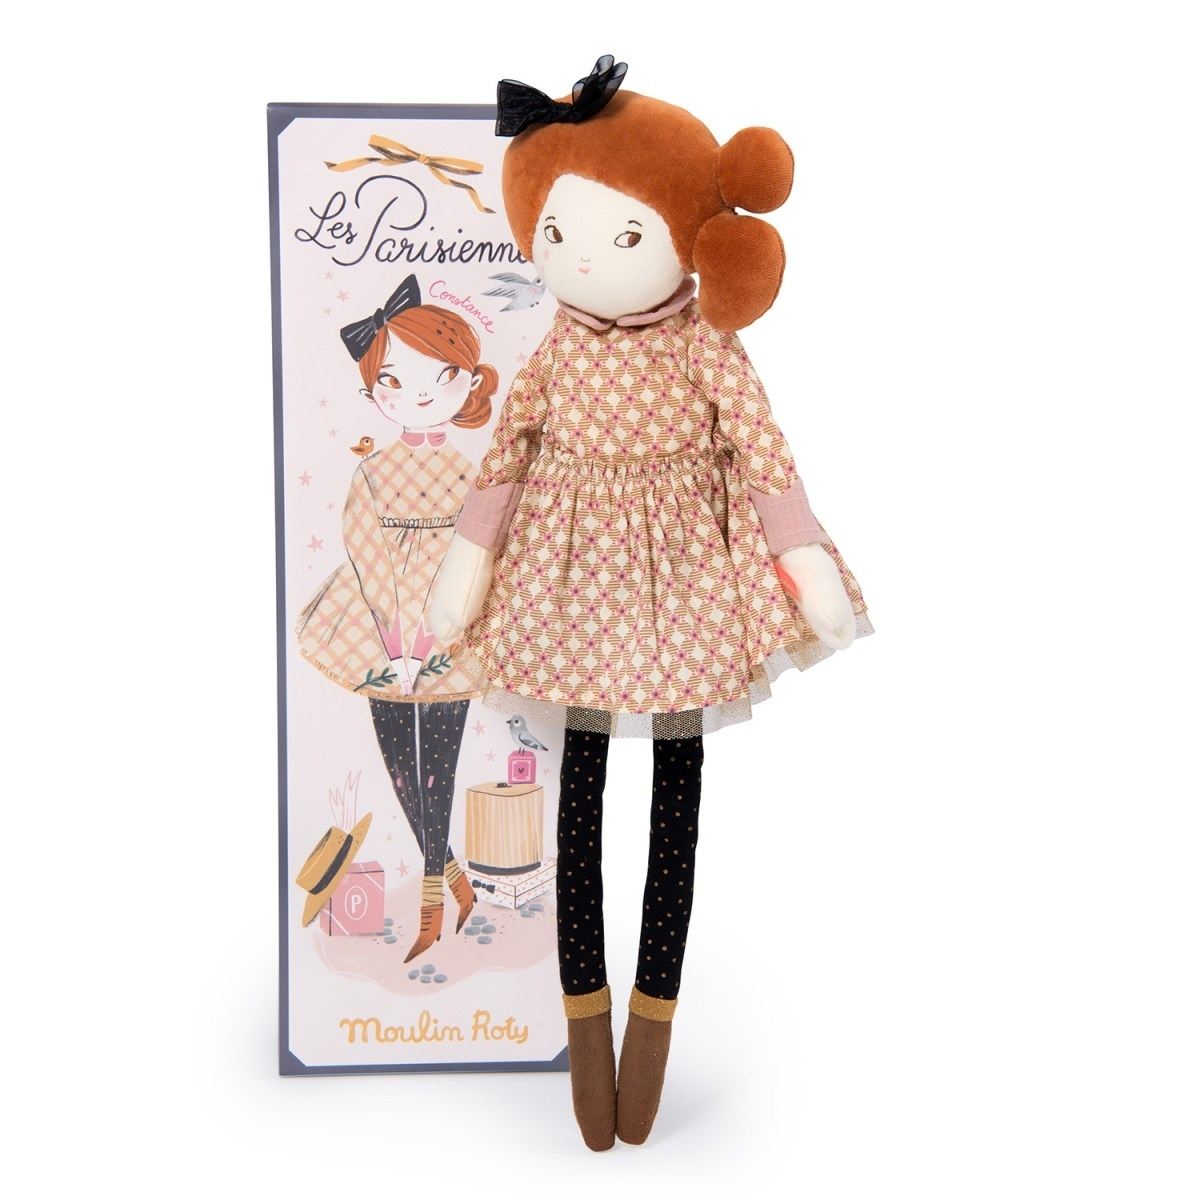 Moulin Roty - Madame Constance